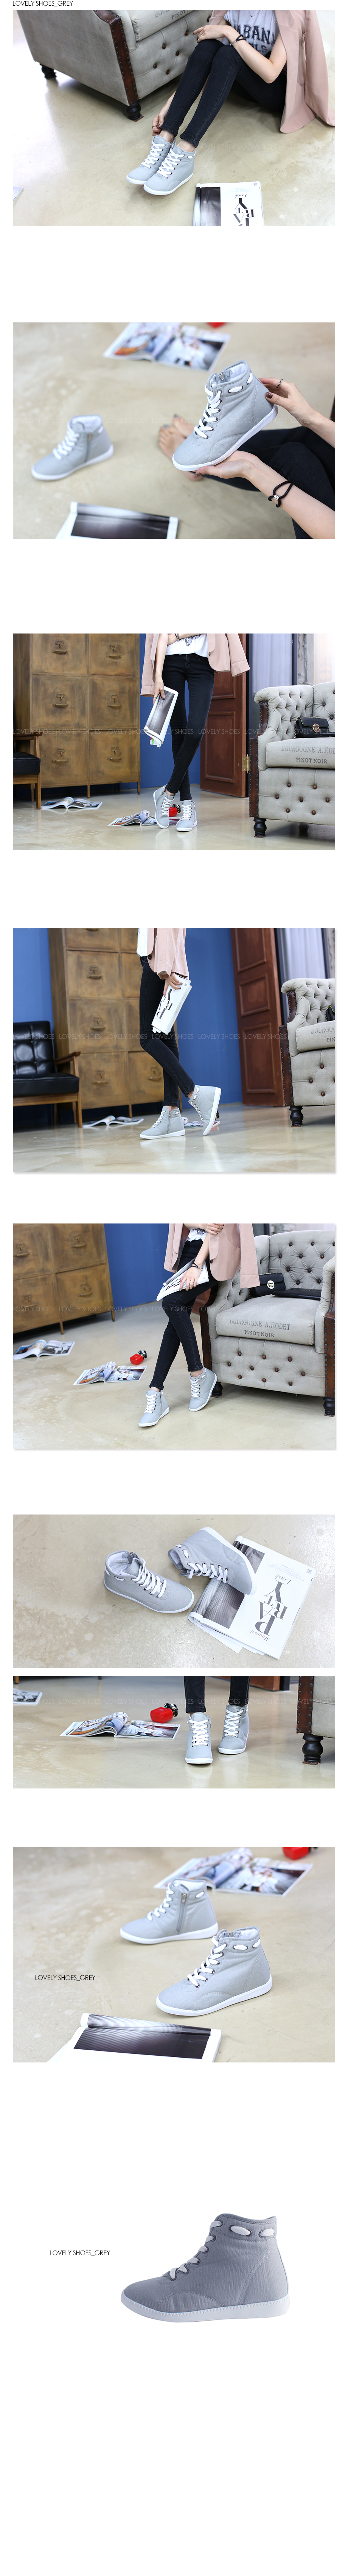 Rooney Dell High Top Sneakers 6.5cm